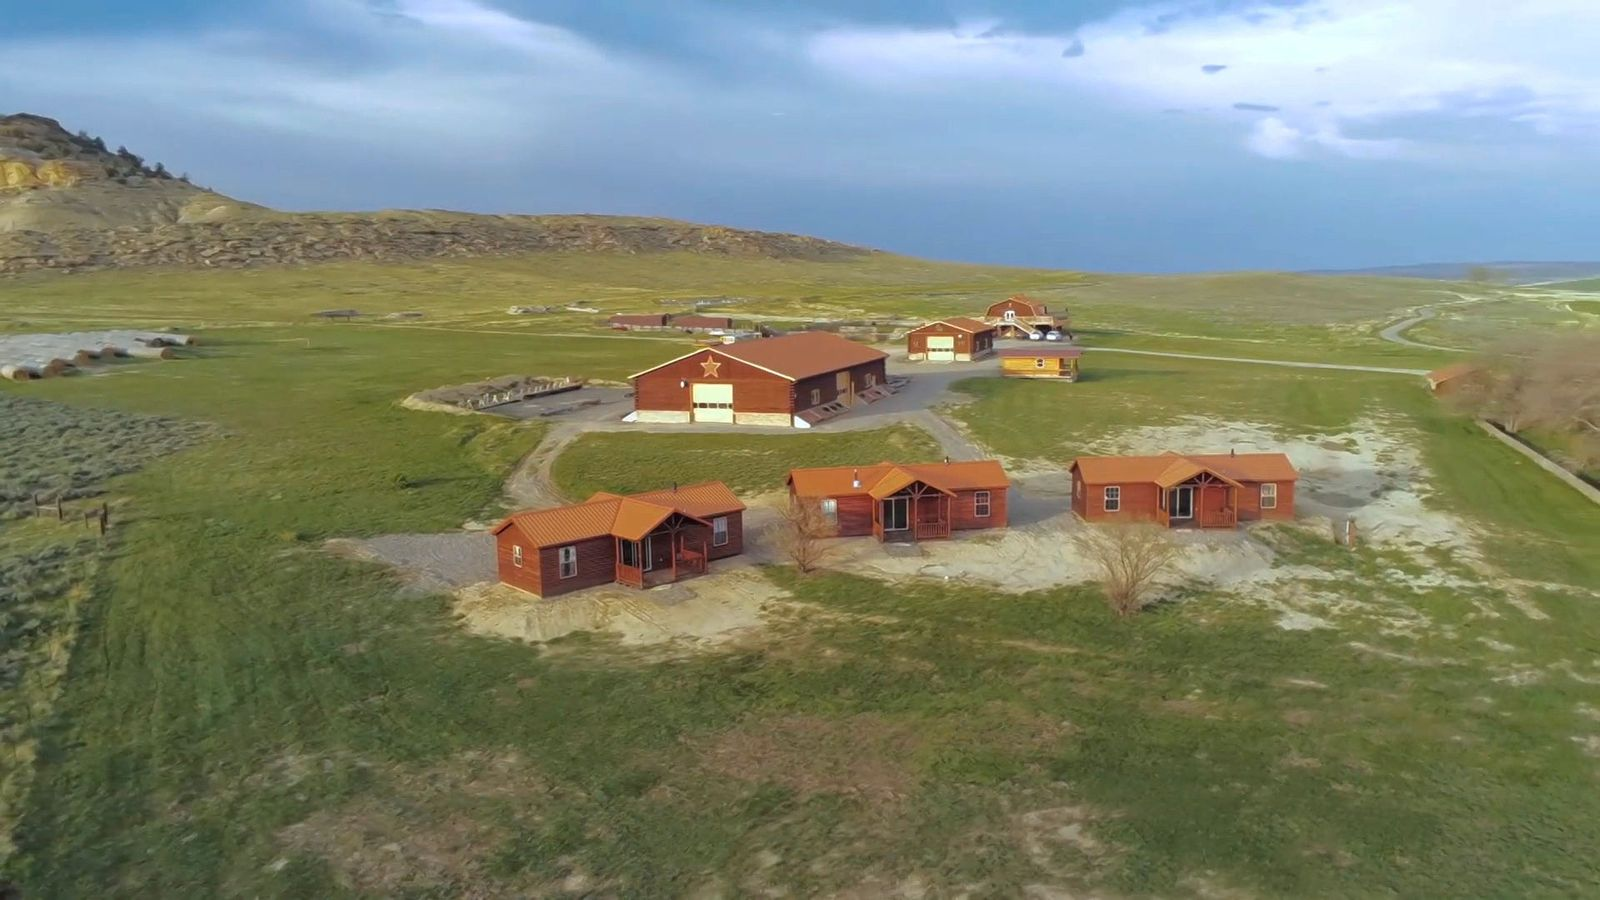 Kim Kardashian and Kanye West have reportedly splashed out $14 million on a ranch in Wyoming.